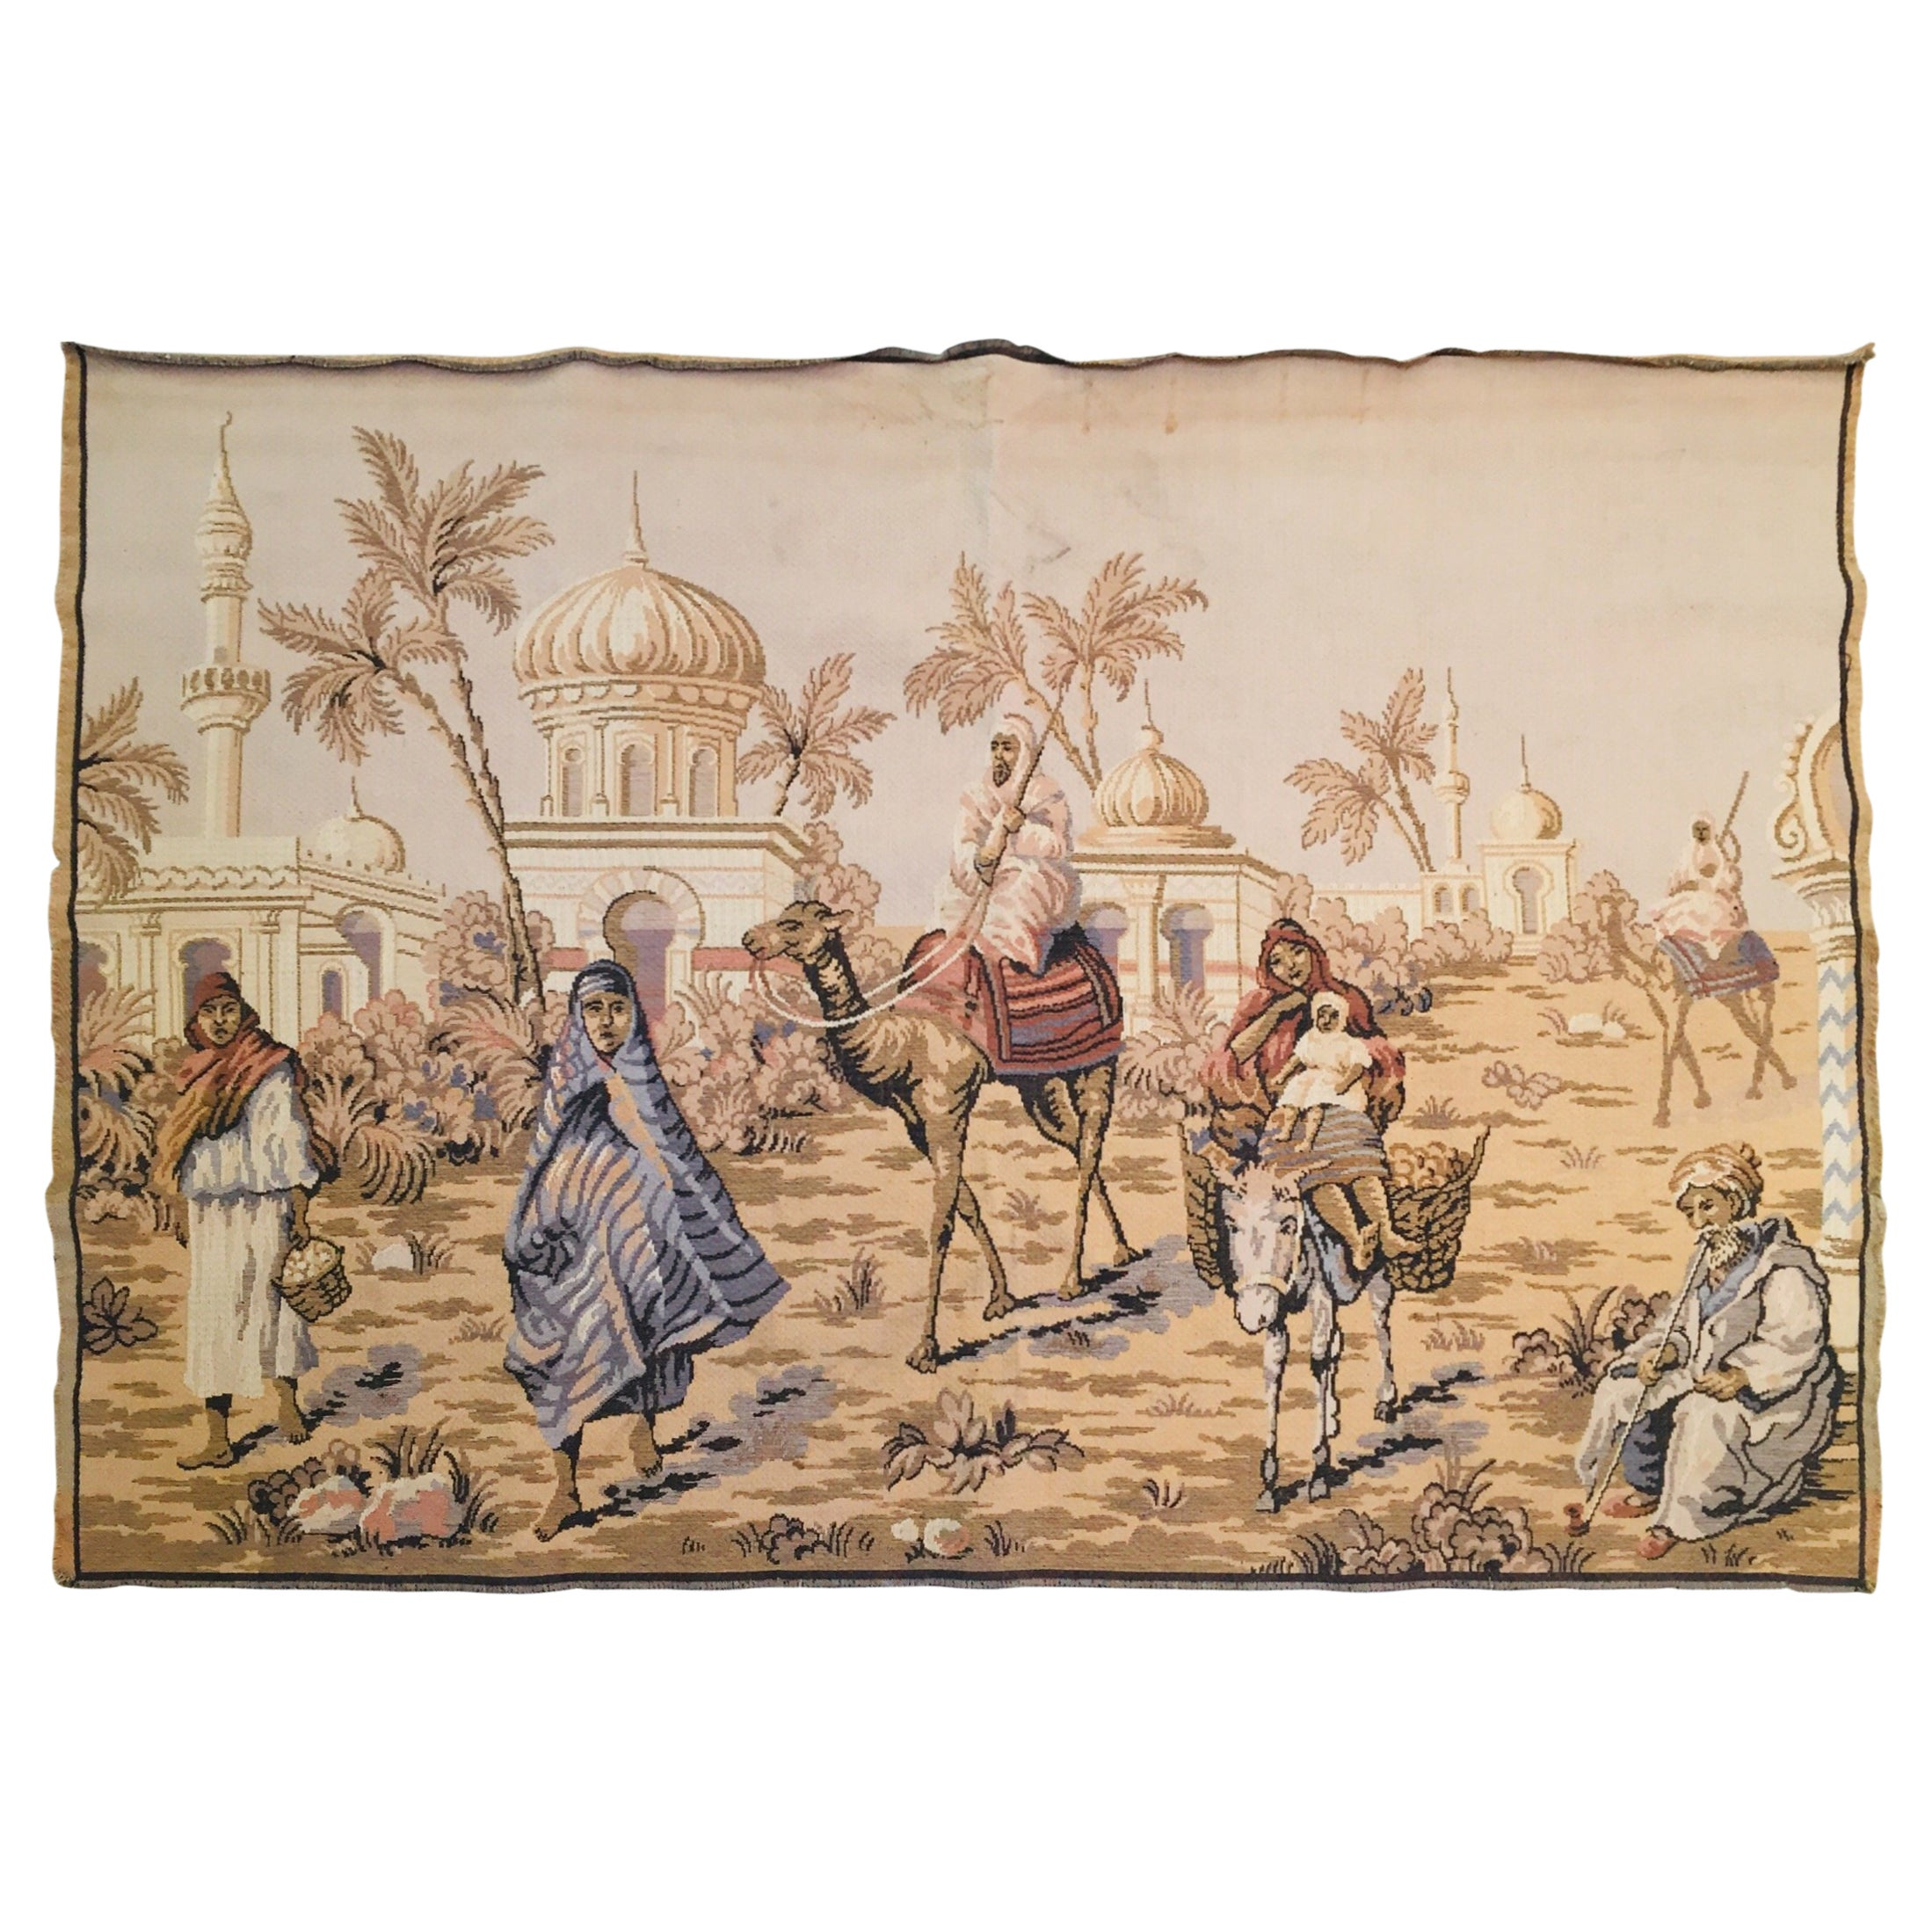 Large Tapestry with an 19th Century Orientalist Scene and Moorish Architecture